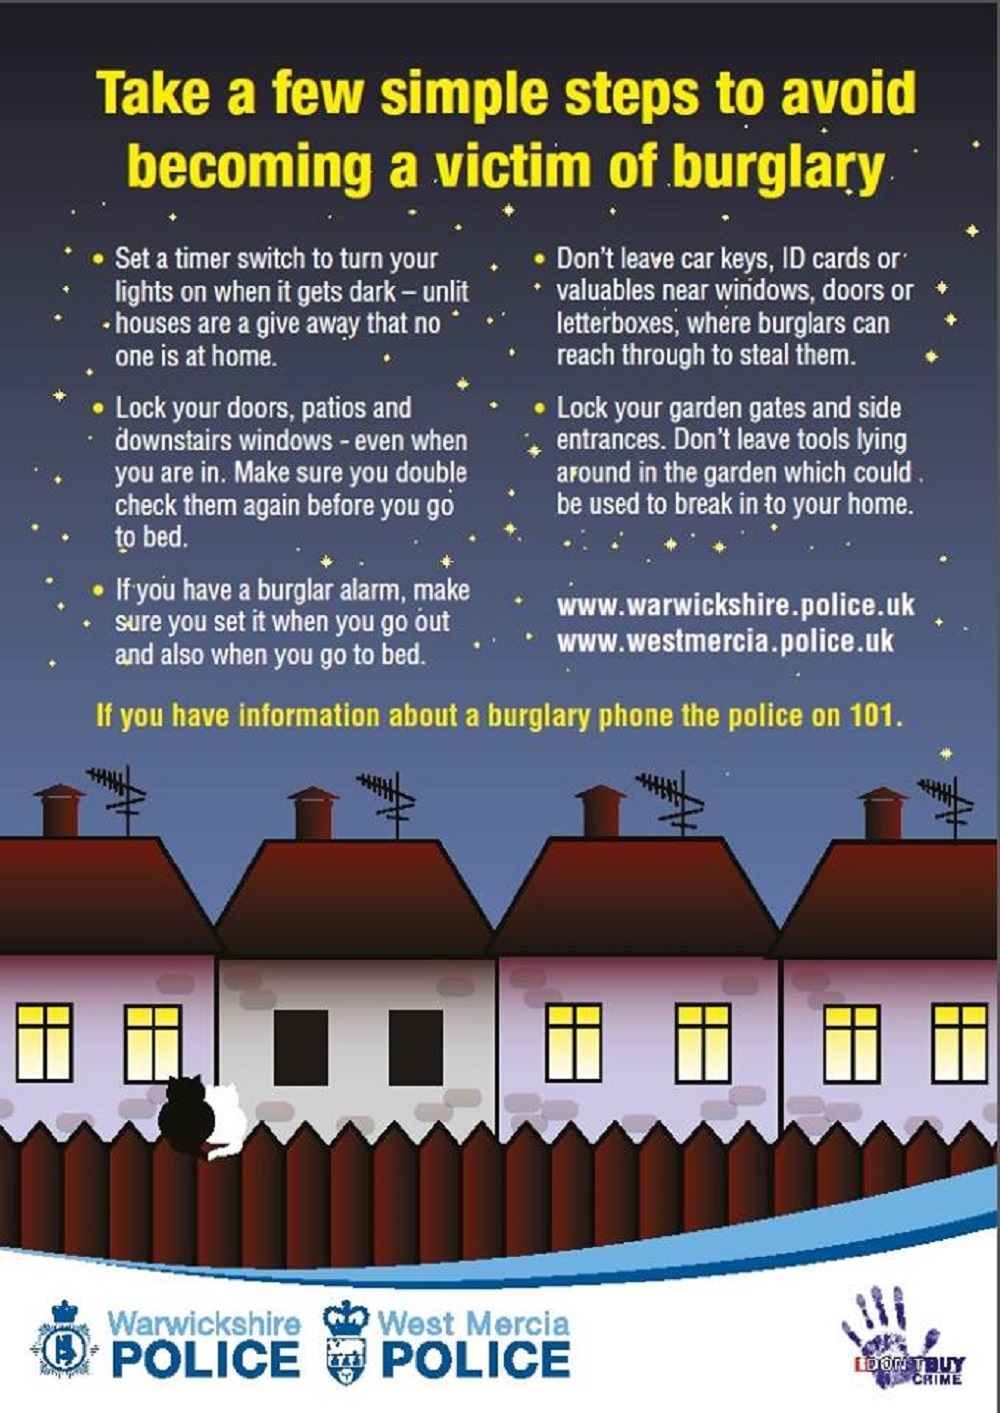 Police issue advice to foil burglars in darker evenings